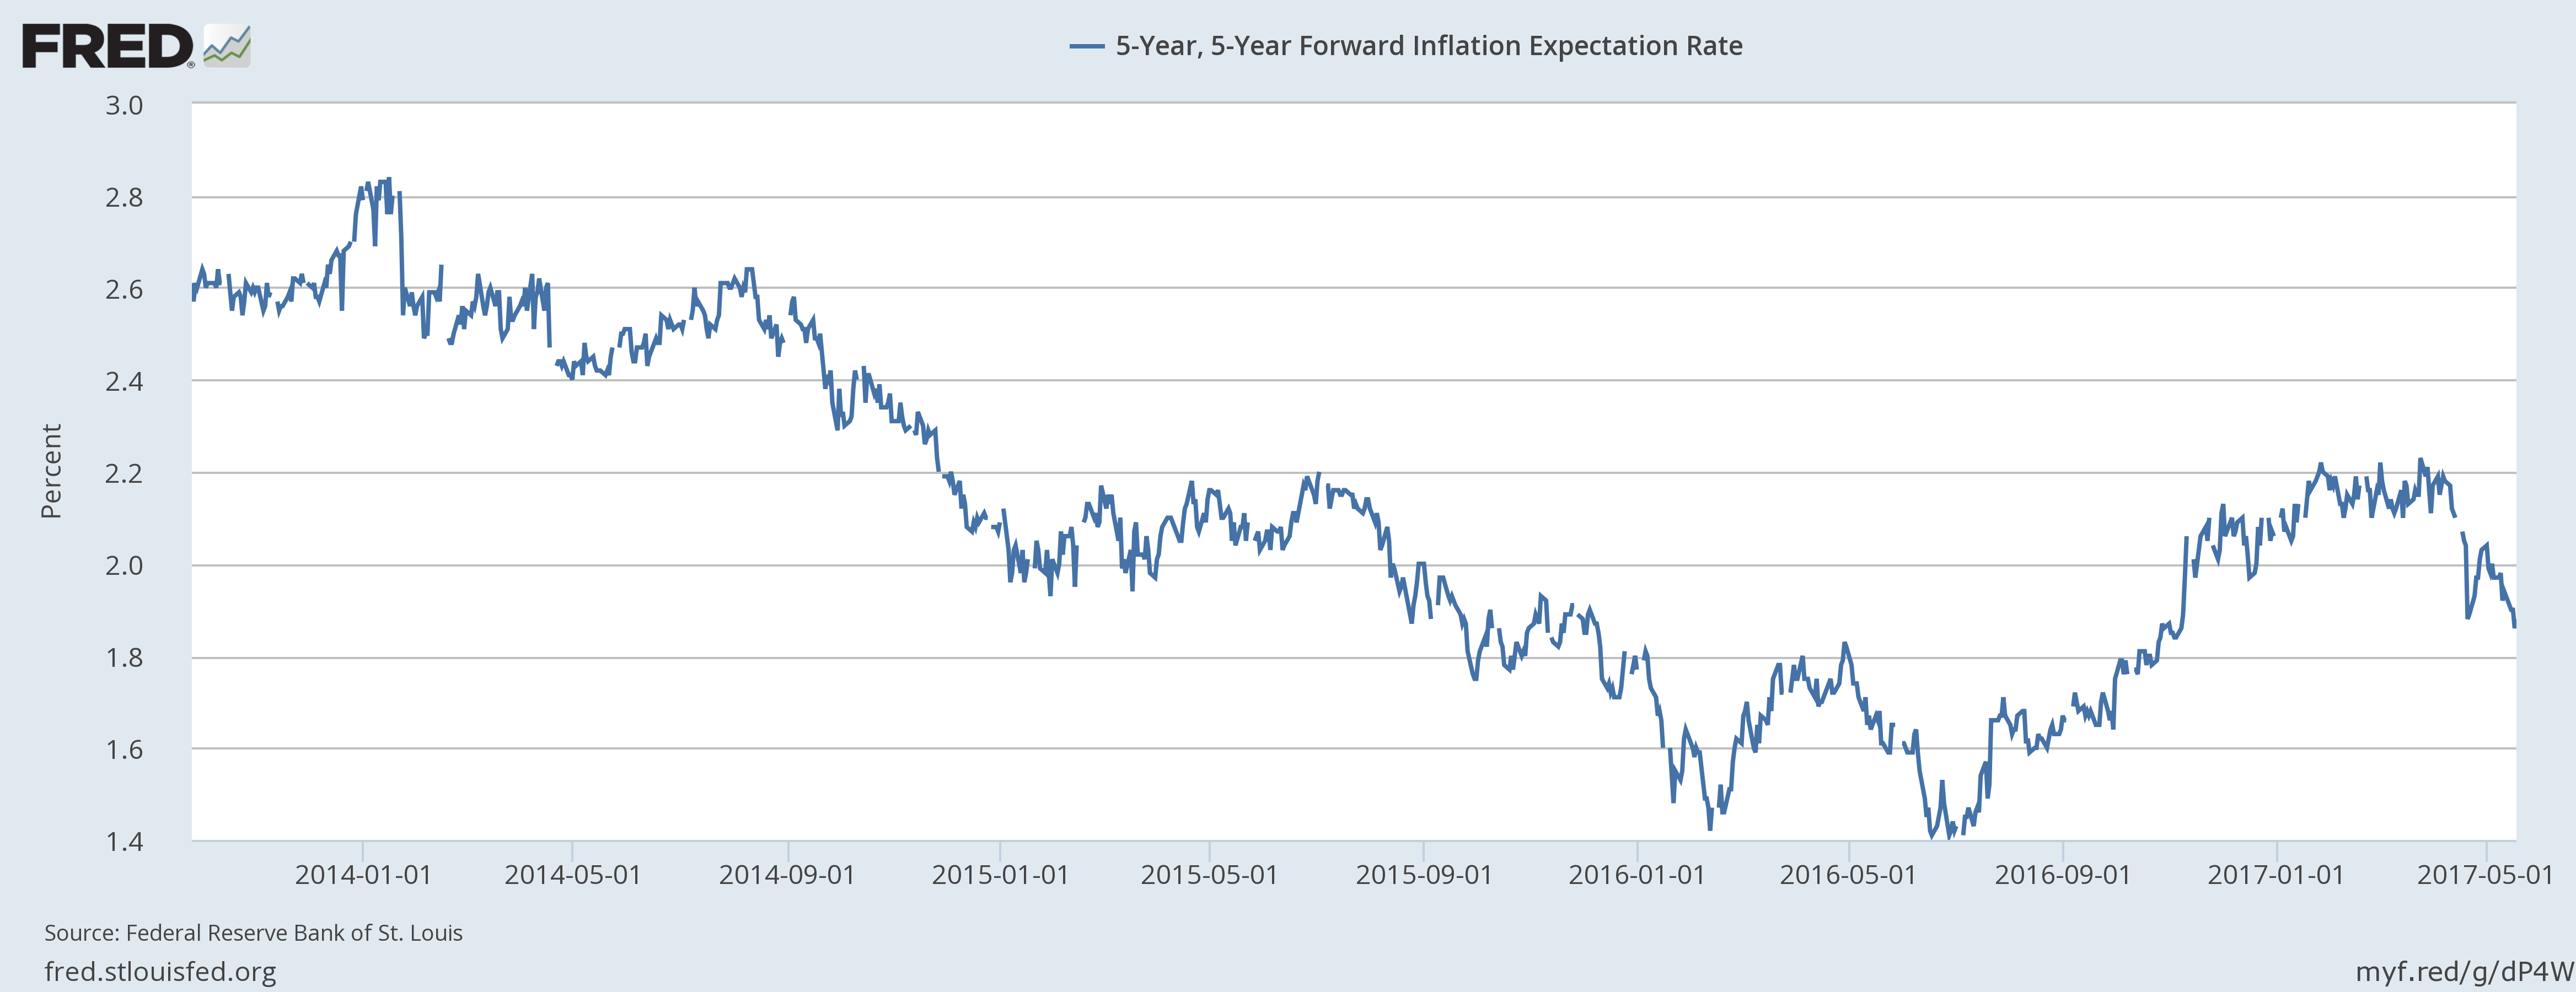 5 - Year Forward Inflation Expectation Rate, January 2004 - May 2017